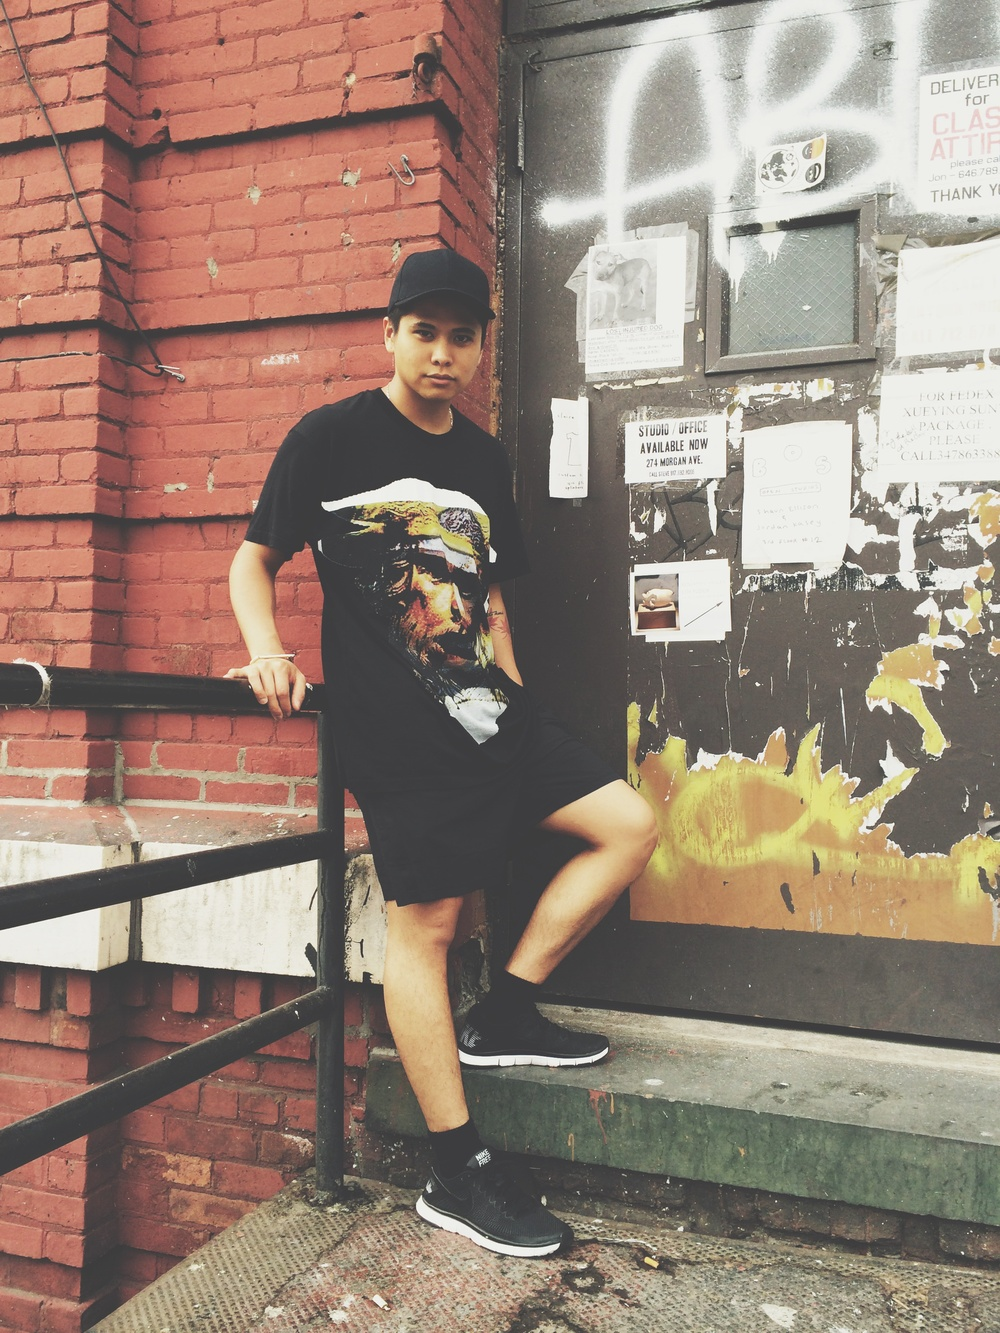 T-SHIRT: GIVENCHY SHORTS AND SHOES: NIKE